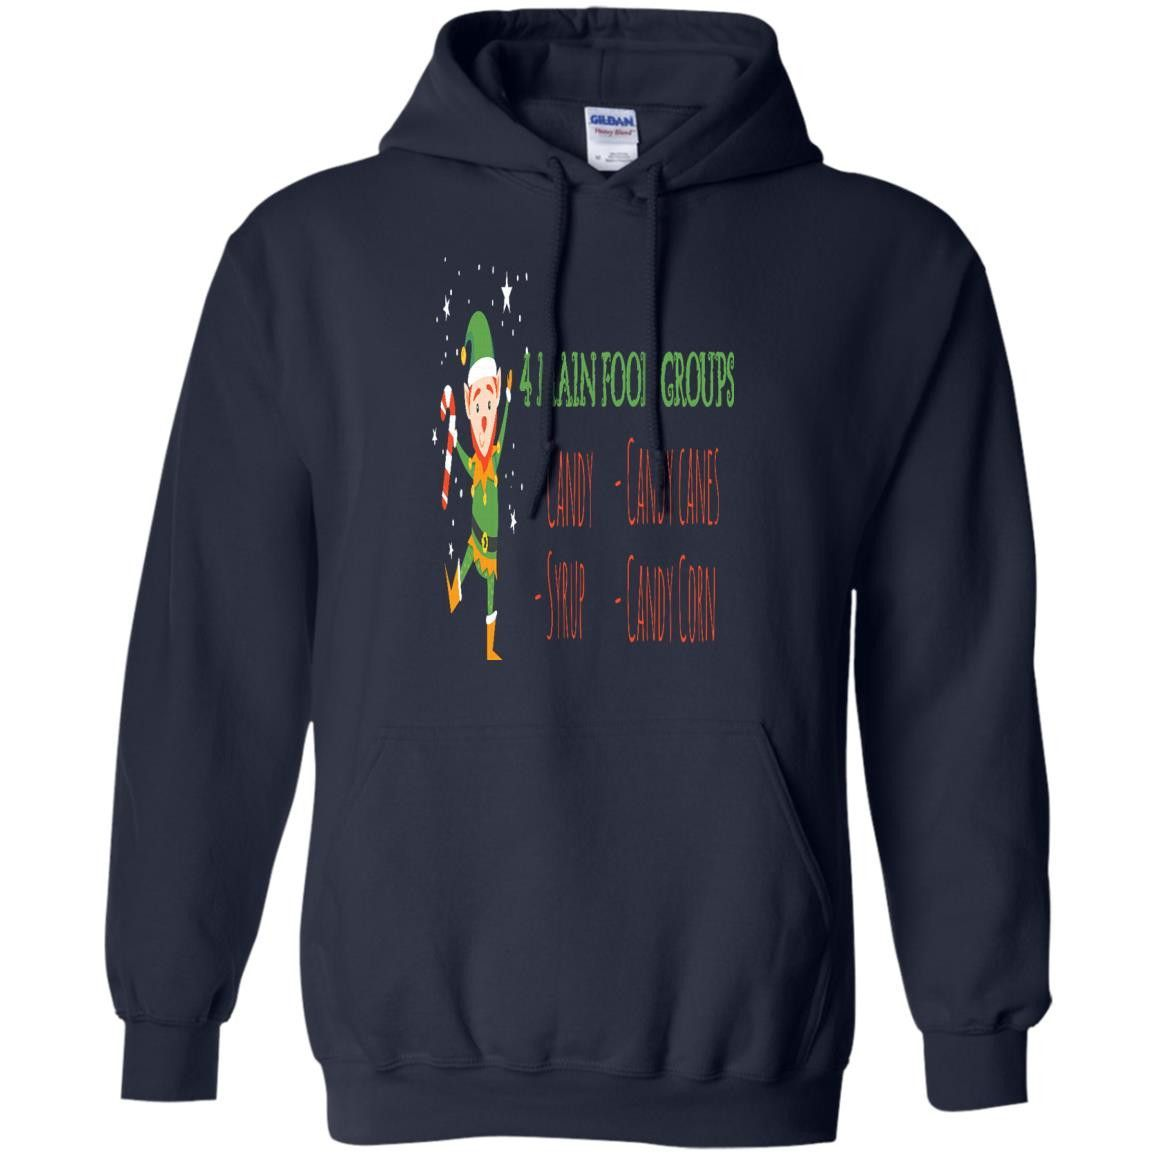 4 MAIN FOOD GROUPS CANDY CORN CANE SYRUP CHRISTMAS ELF G185 Gildan Pullover Hoodie 8 oz.